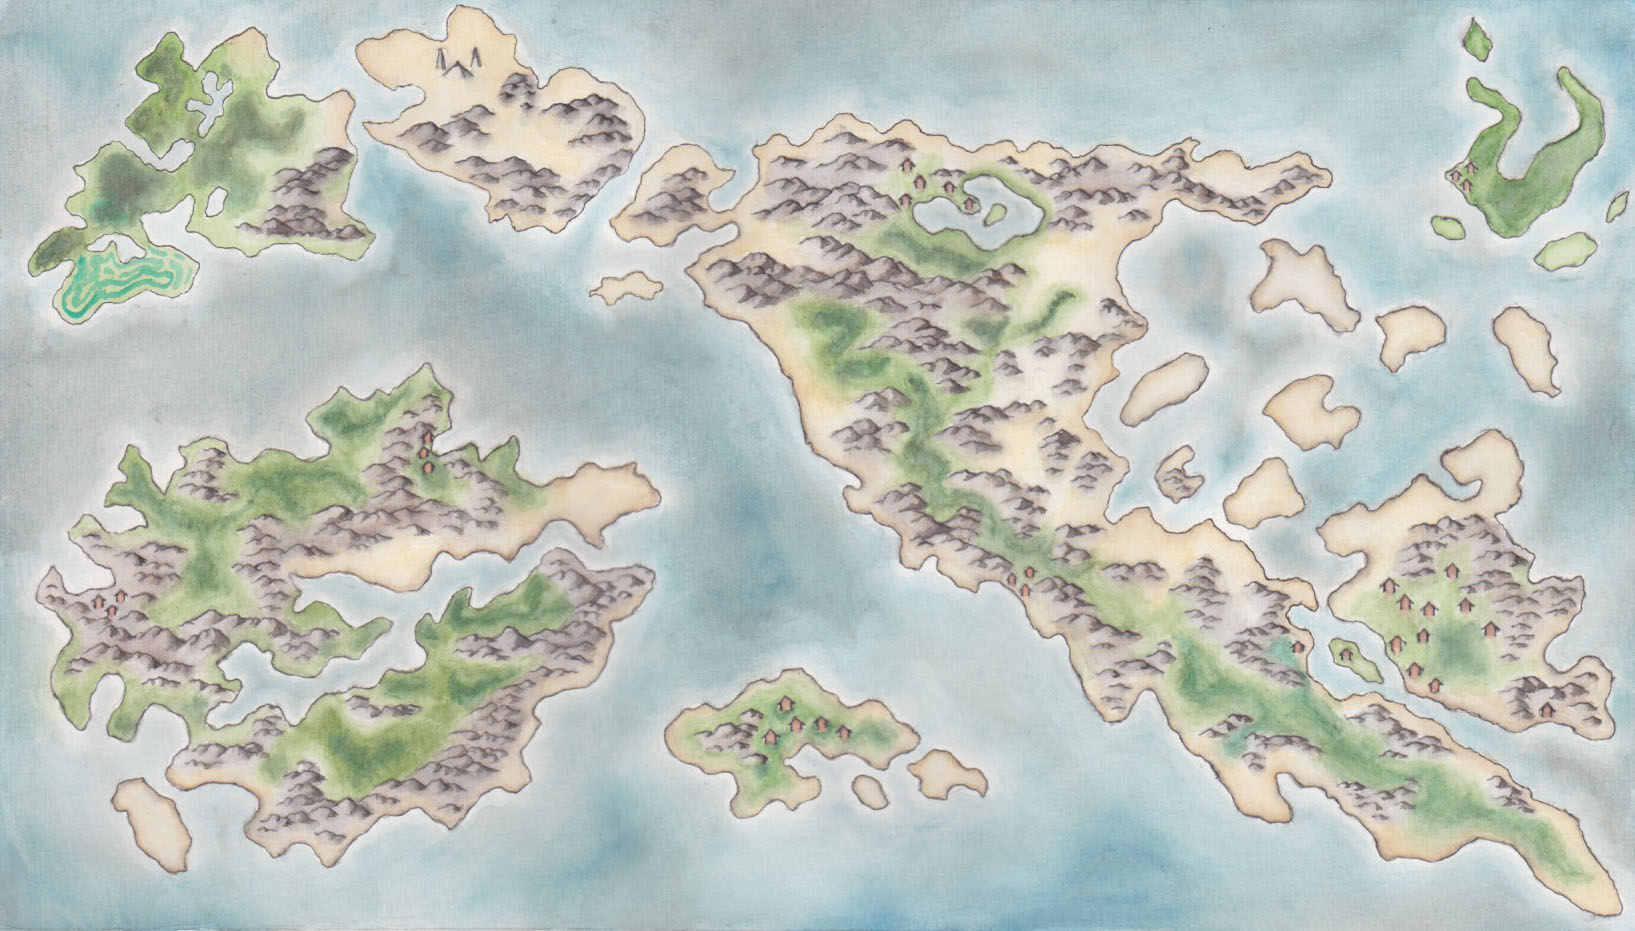 Commissioned map for UO Roleplay.